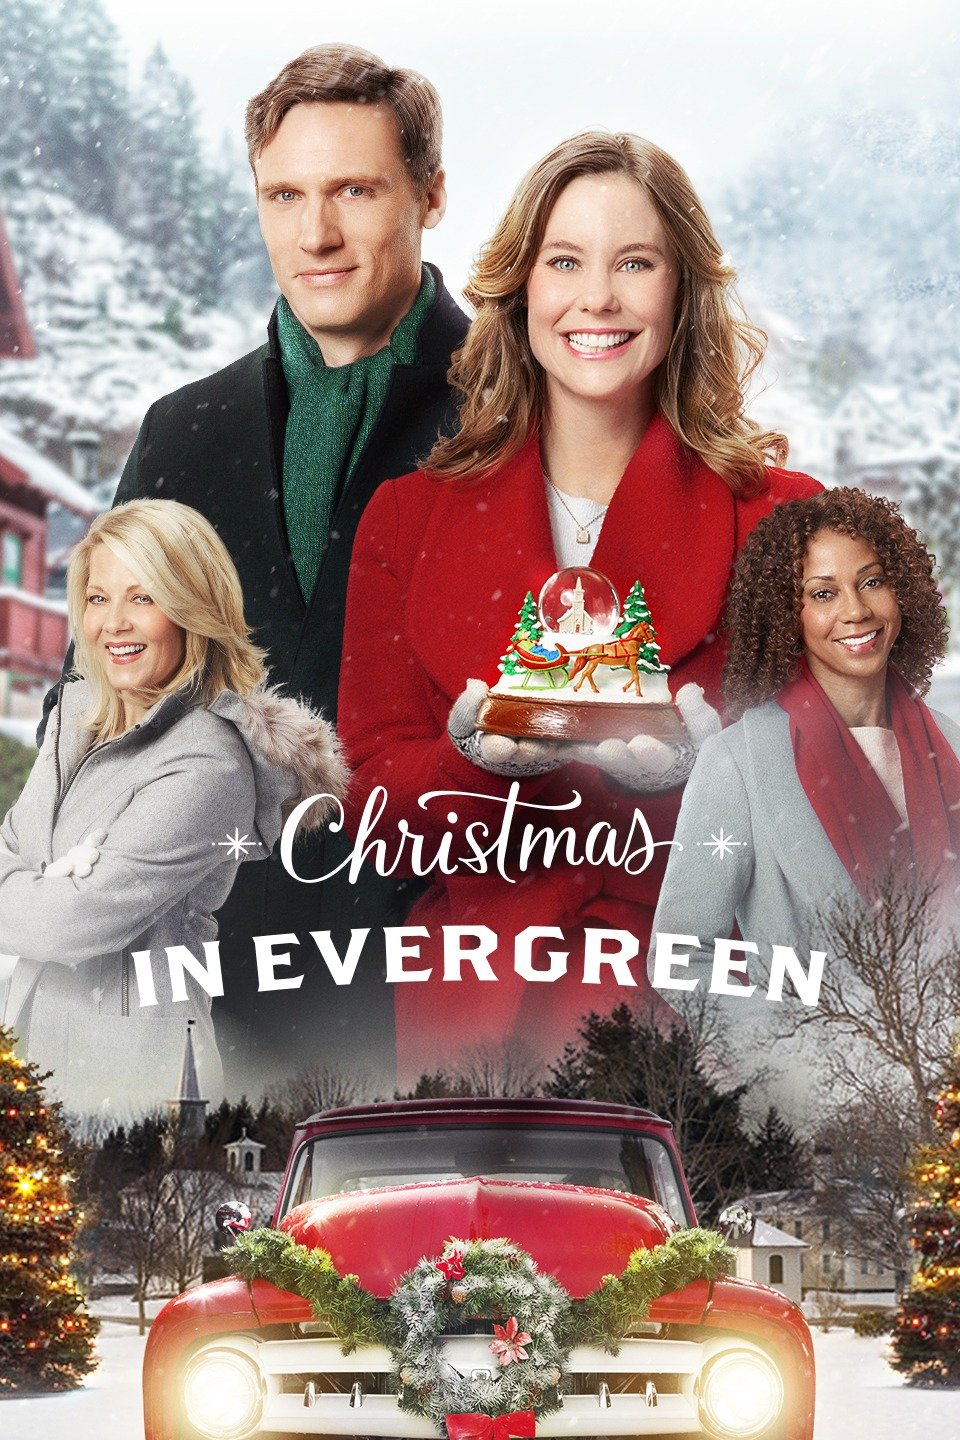 Christmas In Evergreen (TV Movie 2017) - IMDb